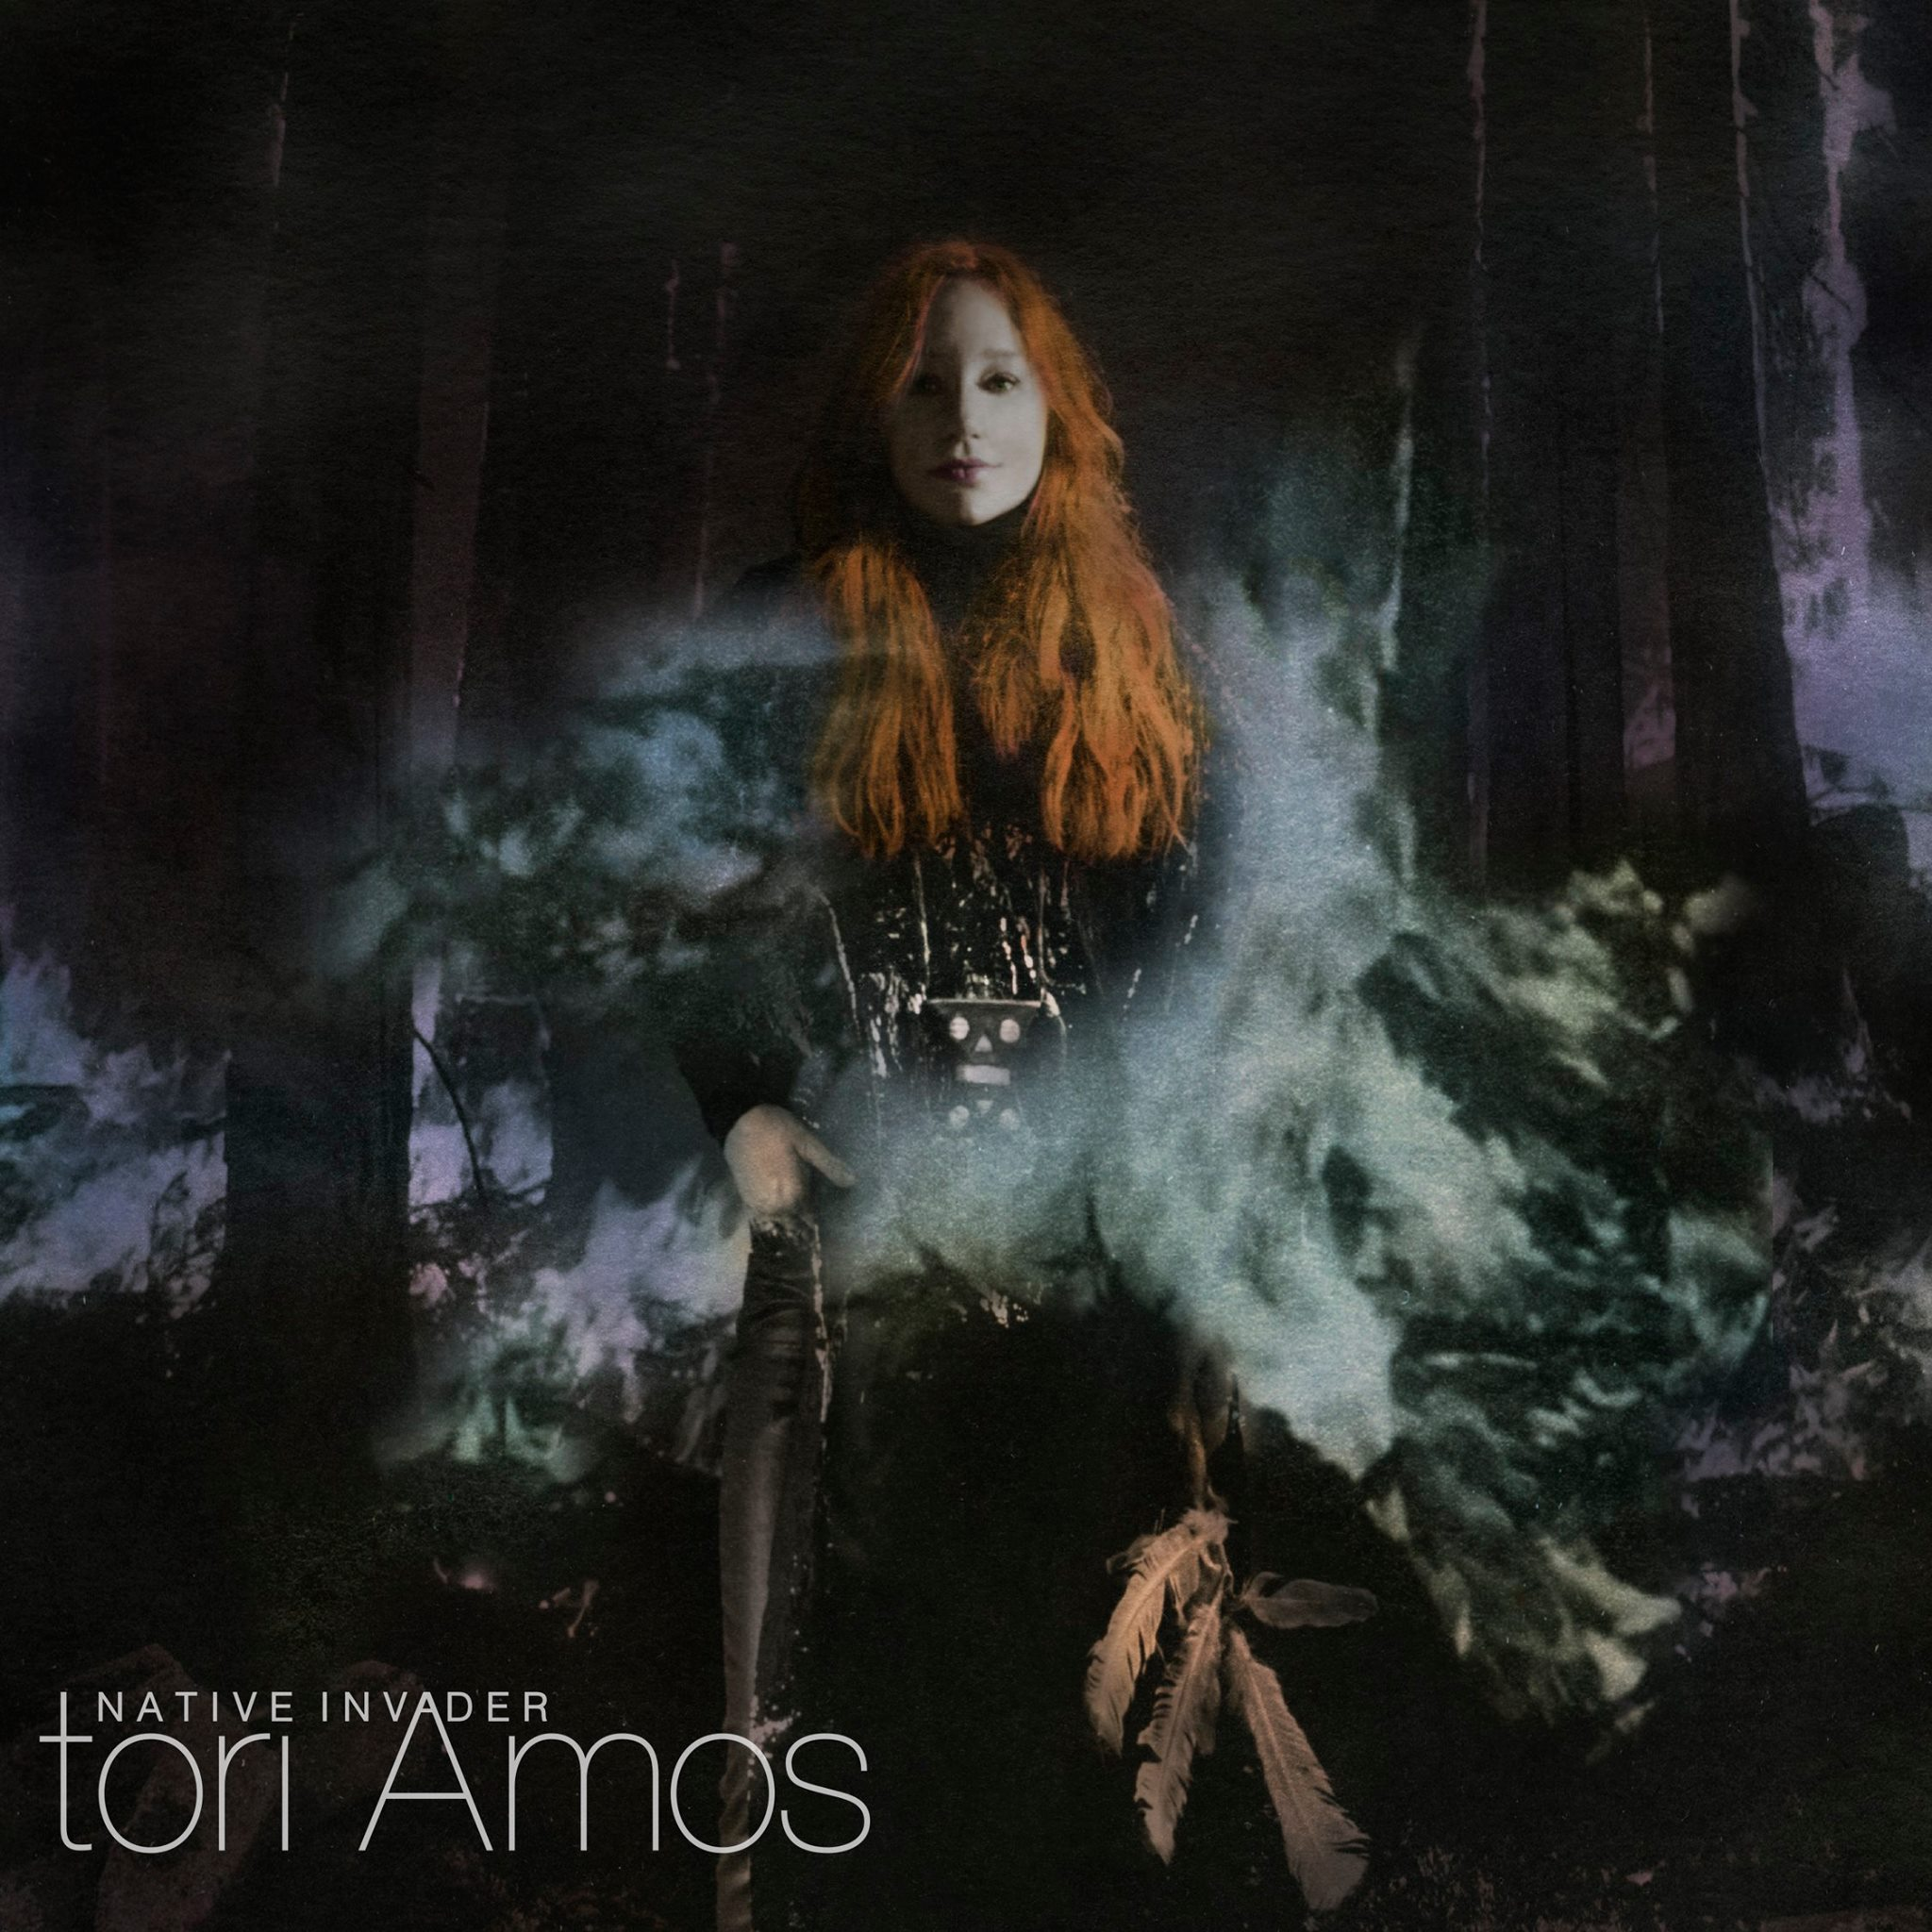 Tori Amos, Native Invader